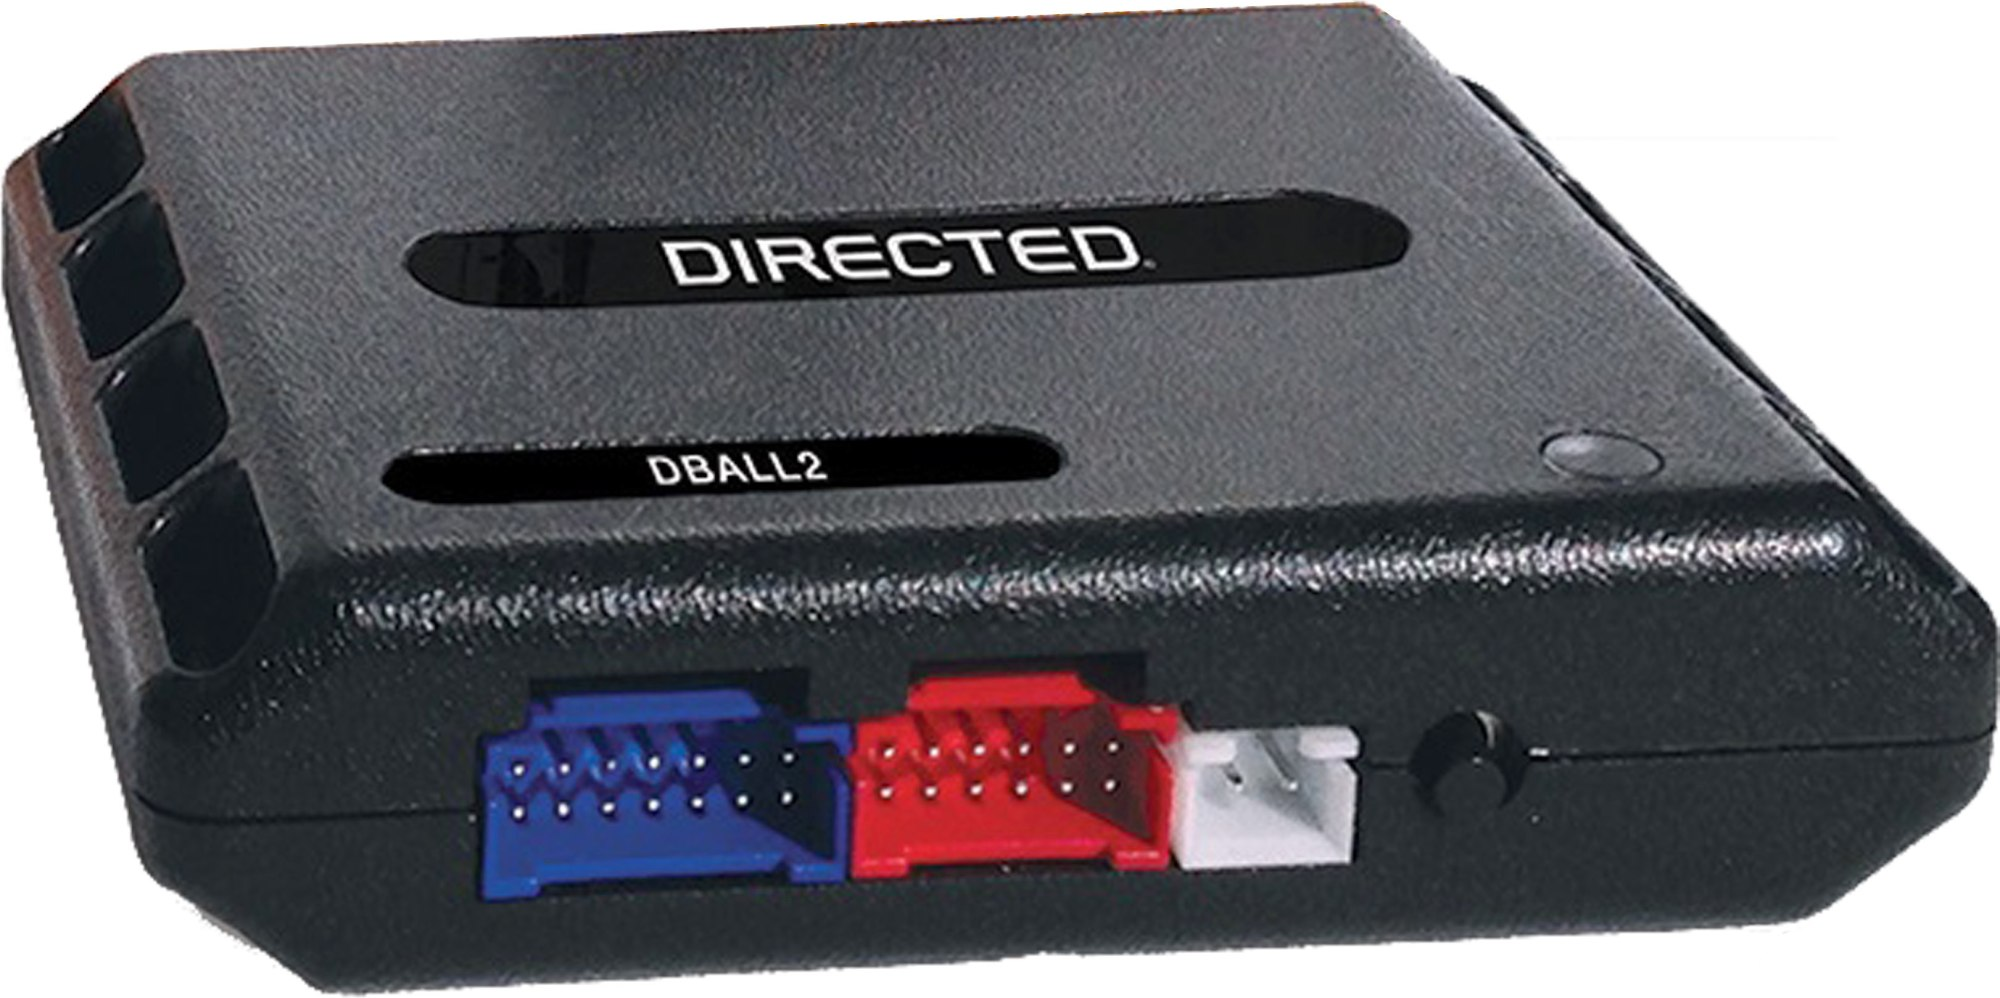 hight resolution of xpresskit dball2 databus all interface module connects a security system to your vehicle s databus at crutchfield